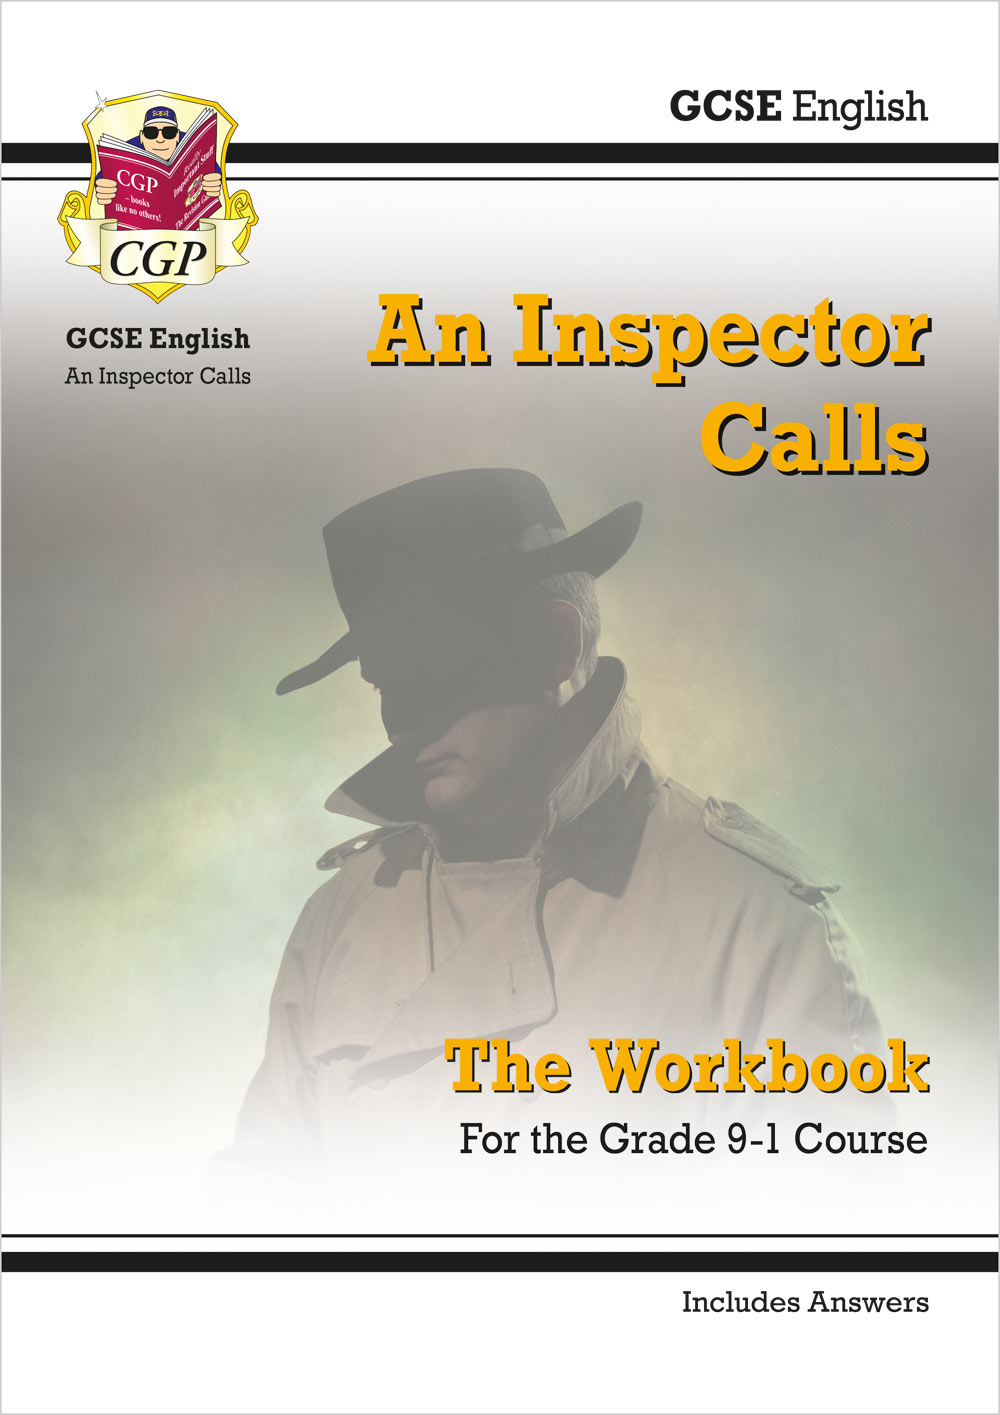 ETWI41 - New Grade 9-1 GCSE English - An Inspector Calls Workbook (includes Answers)